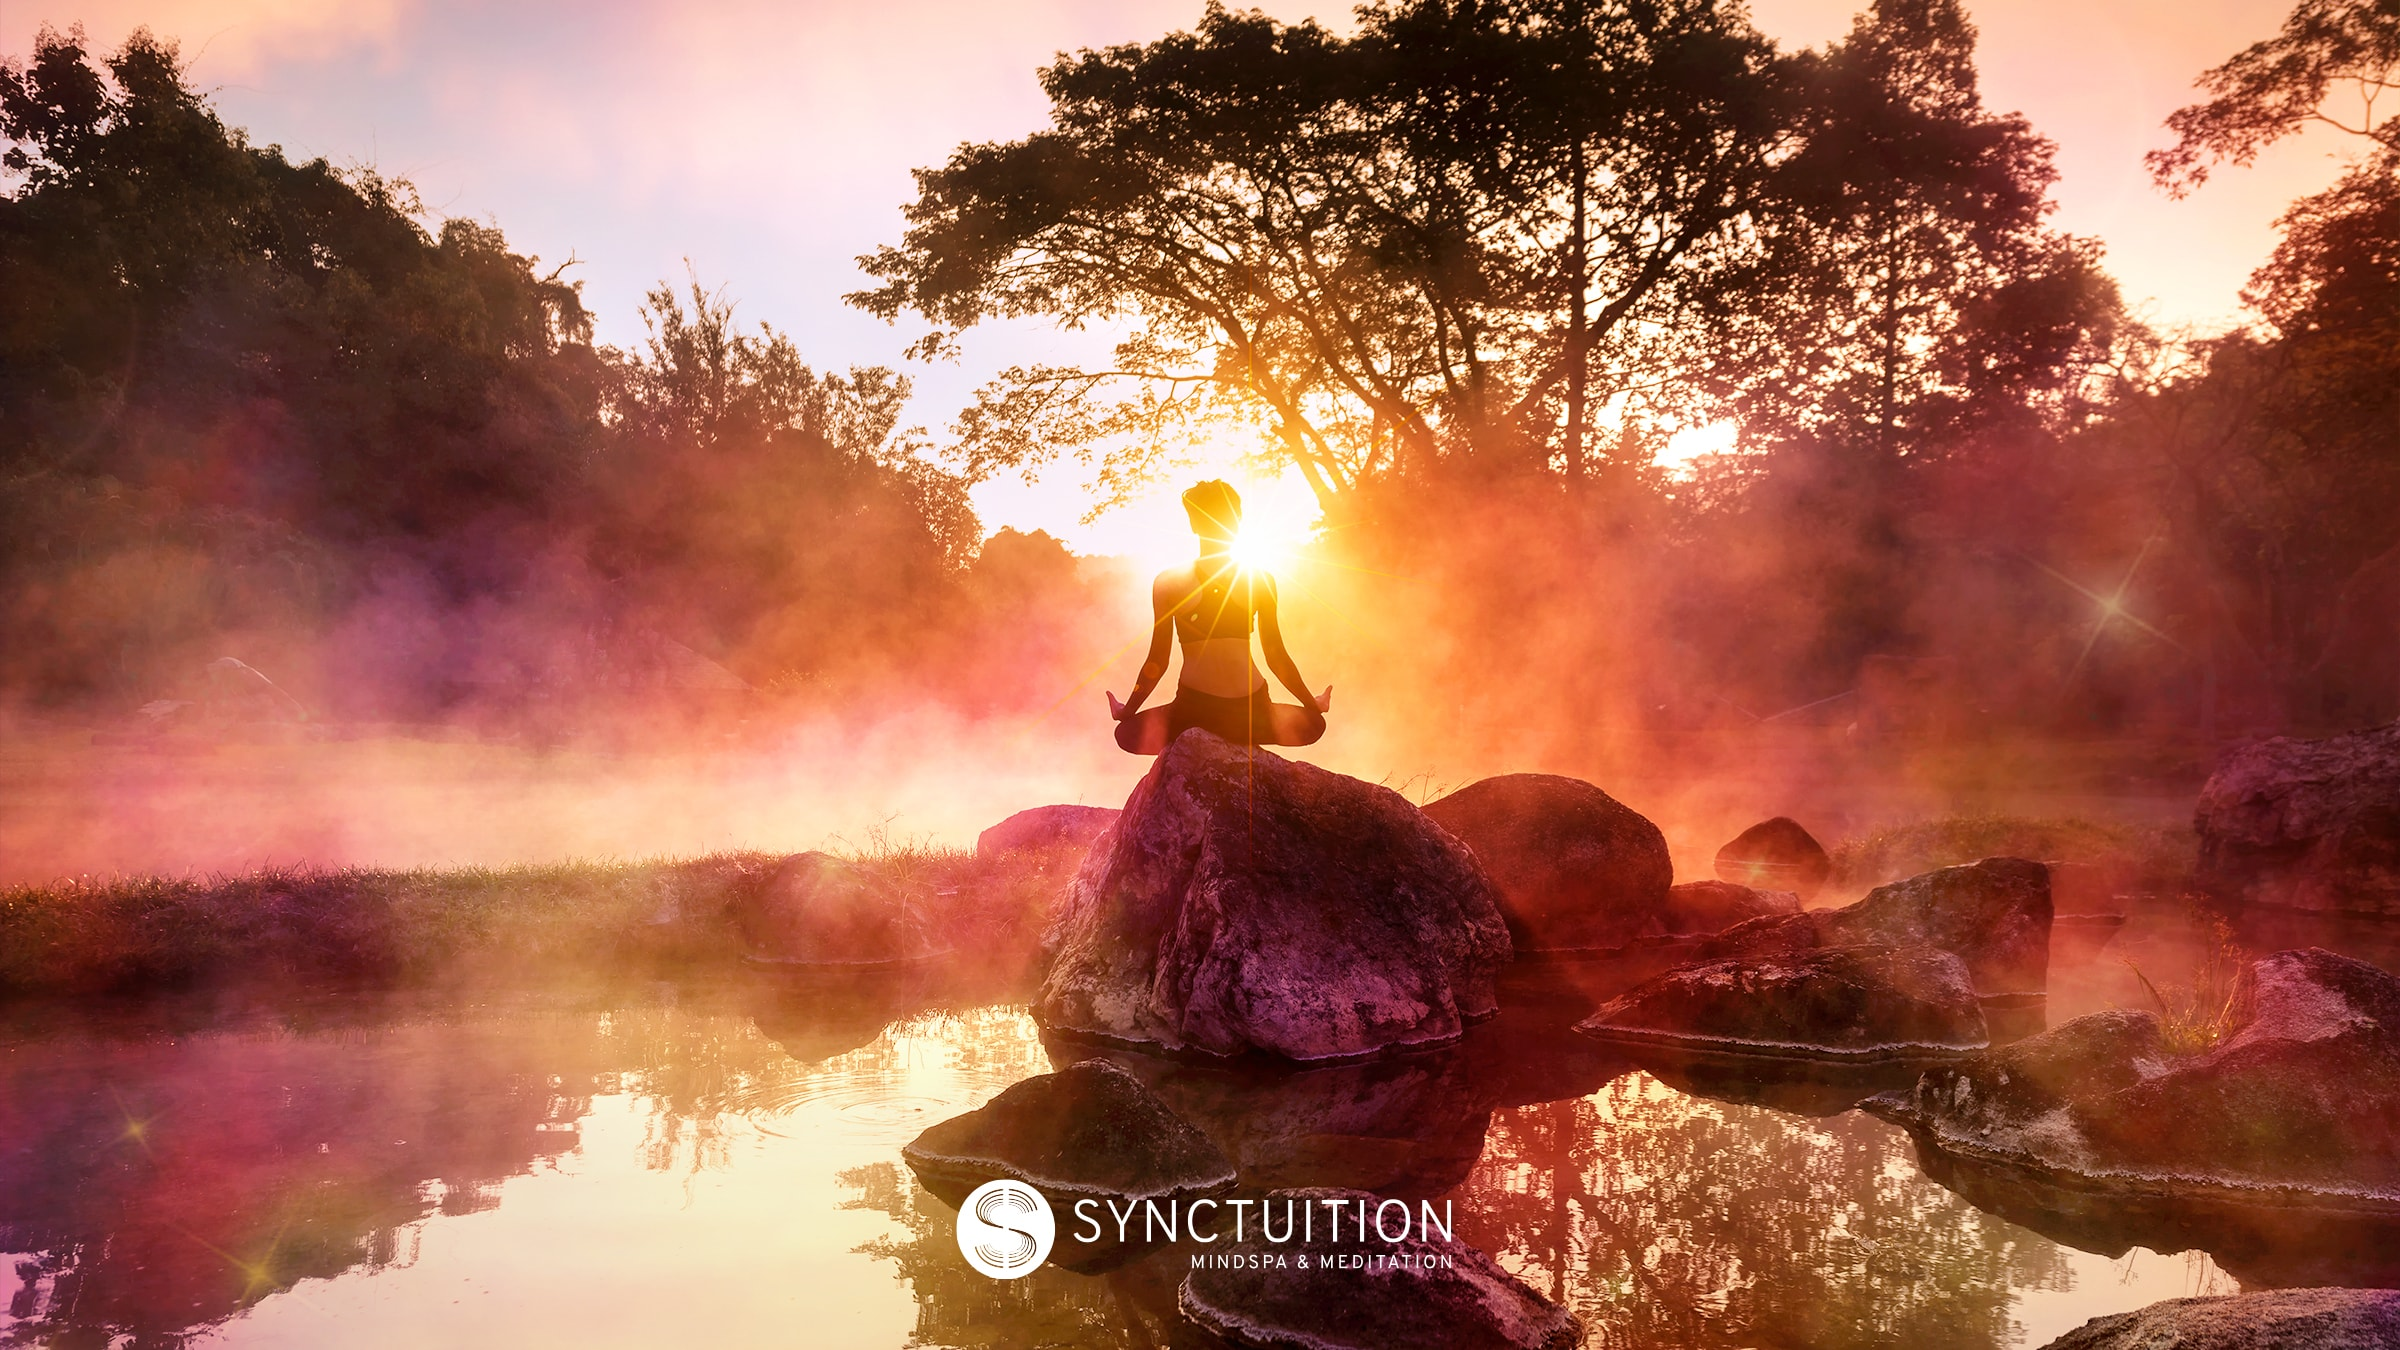 Make time for meditative relaxation.